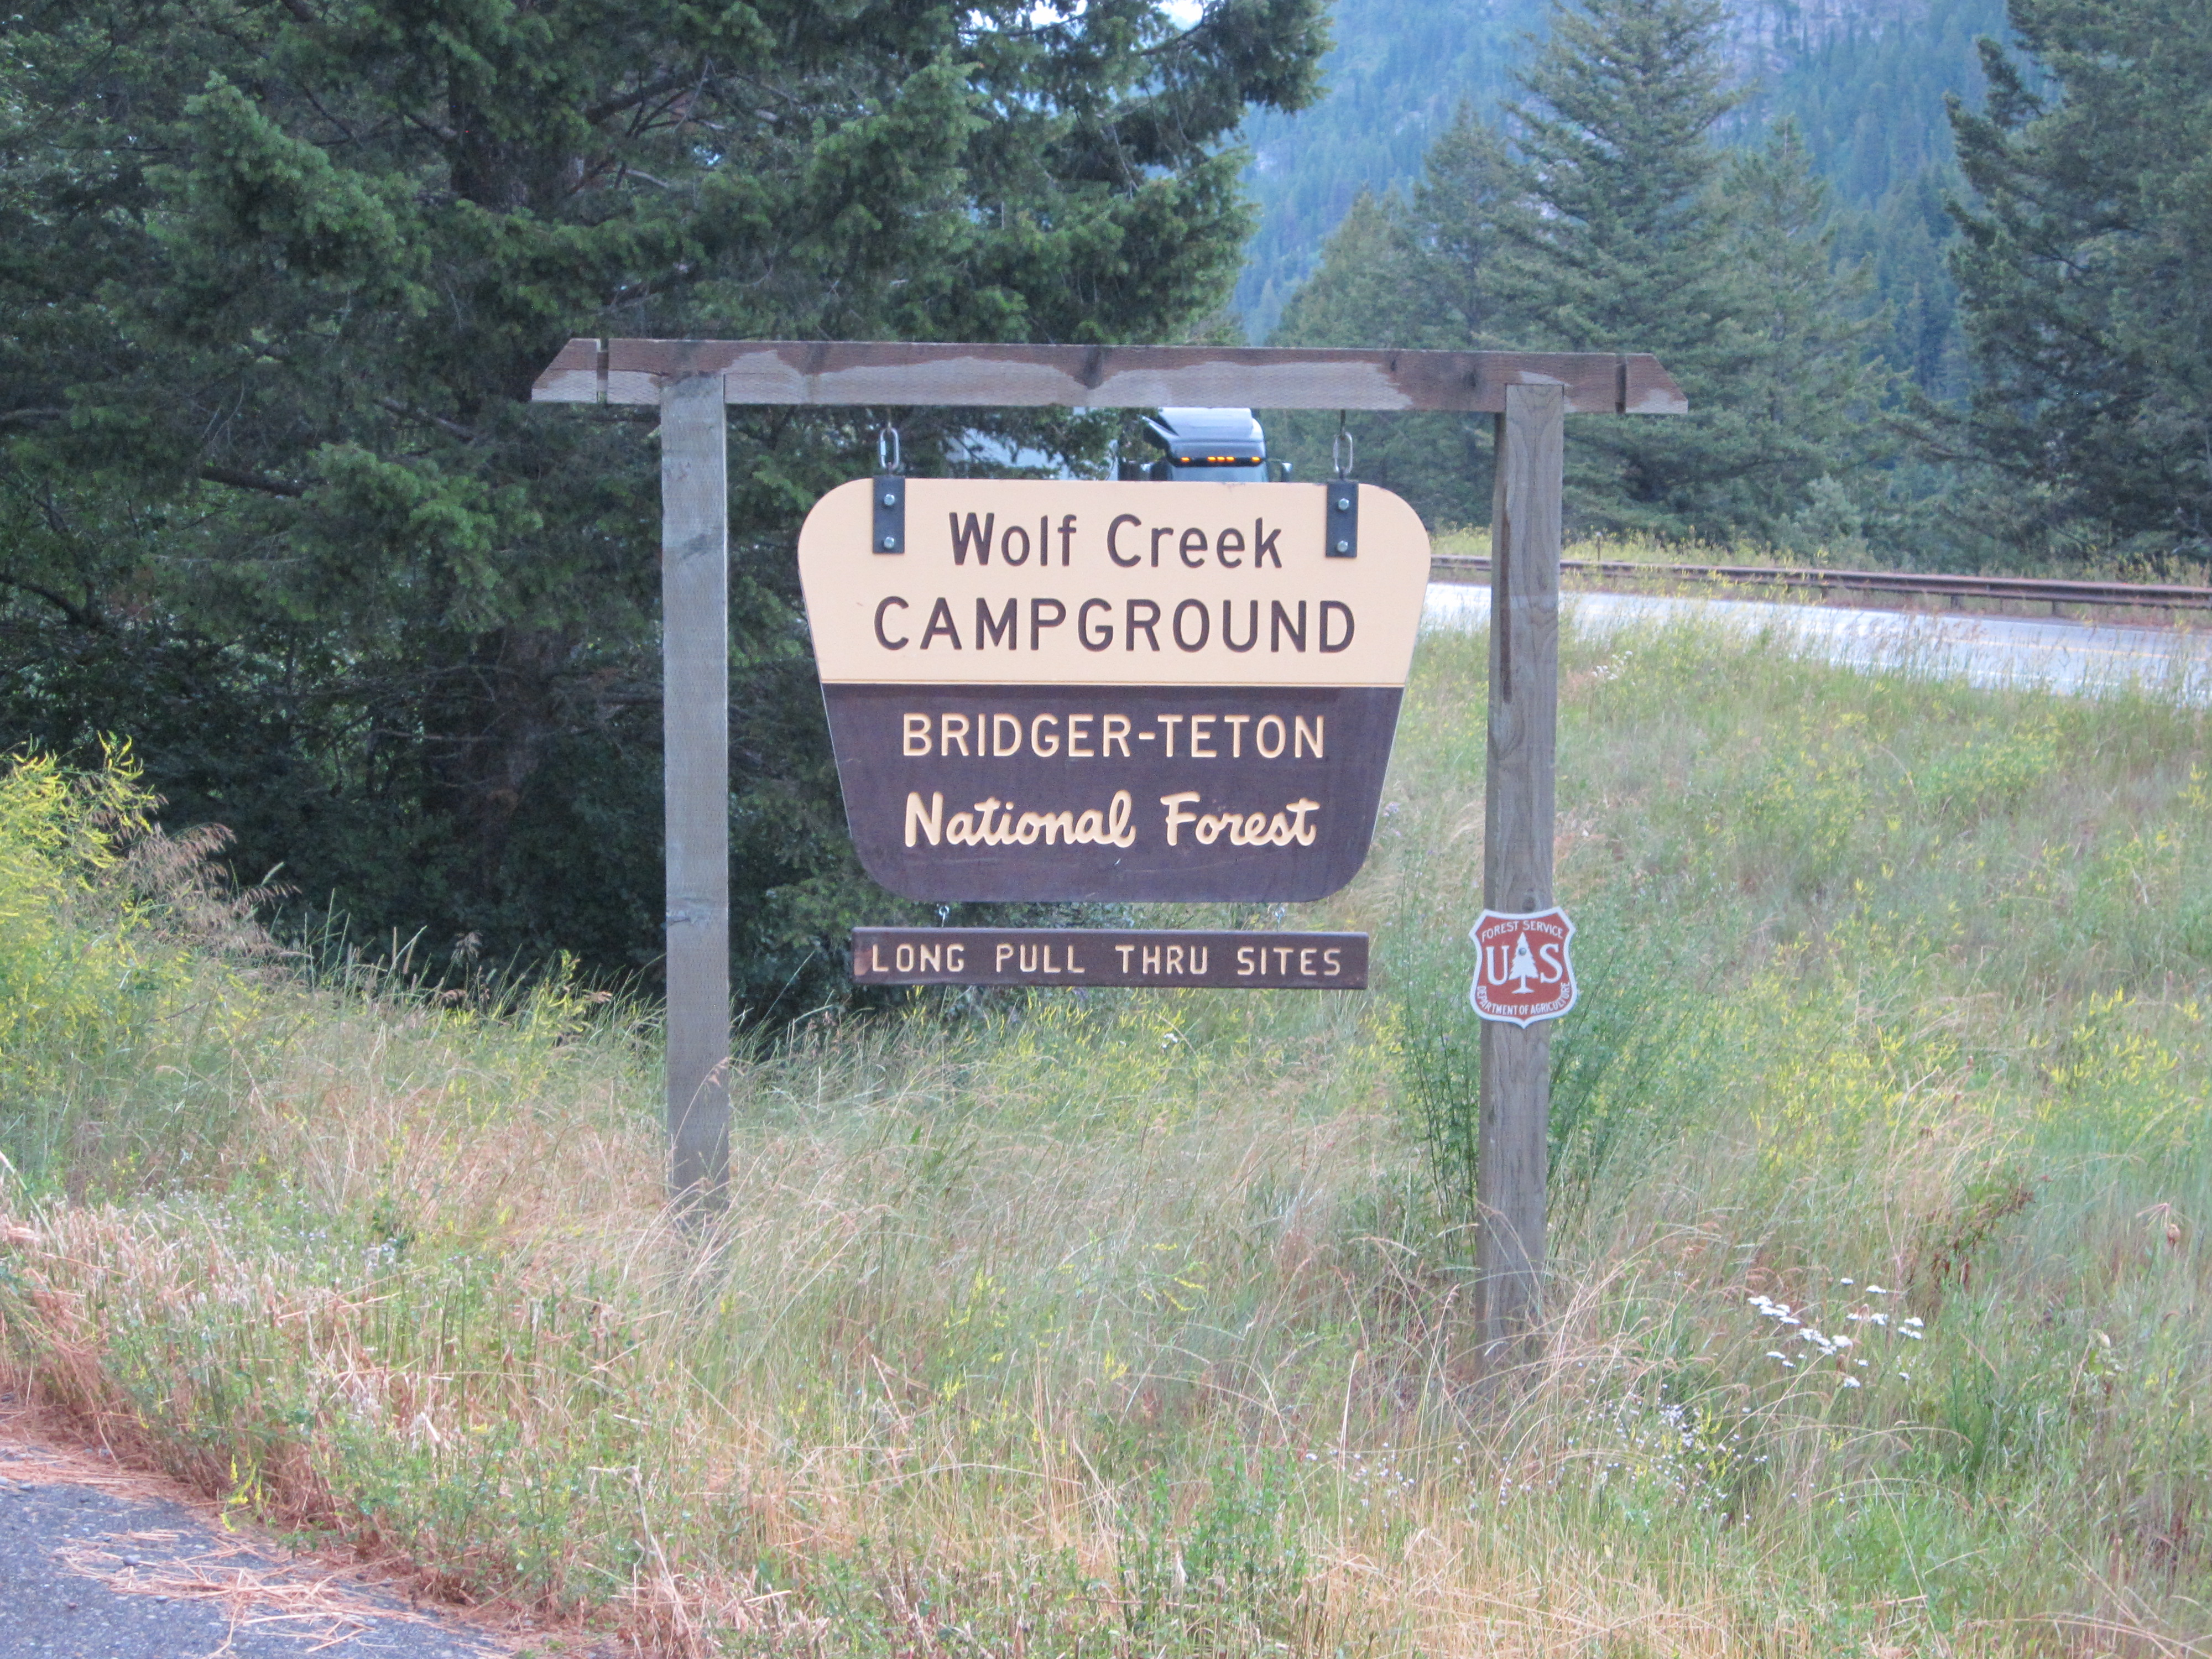 Wolf Creek Campground Trail Sign